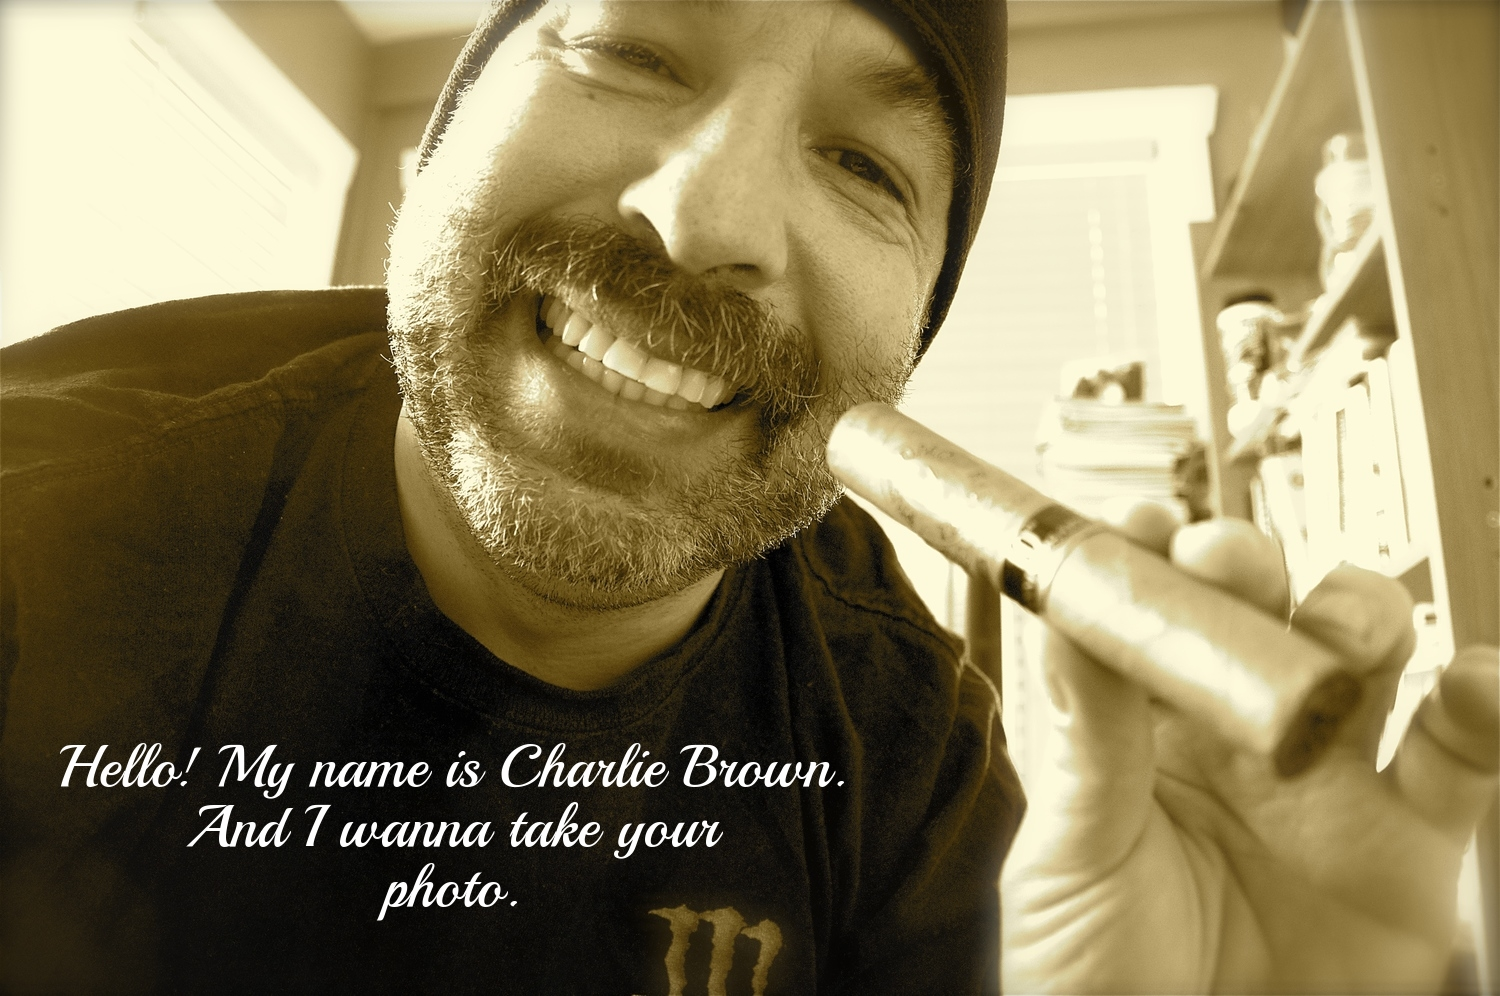 Hello! My name is Charlie Brown. And I wanna take your photo.